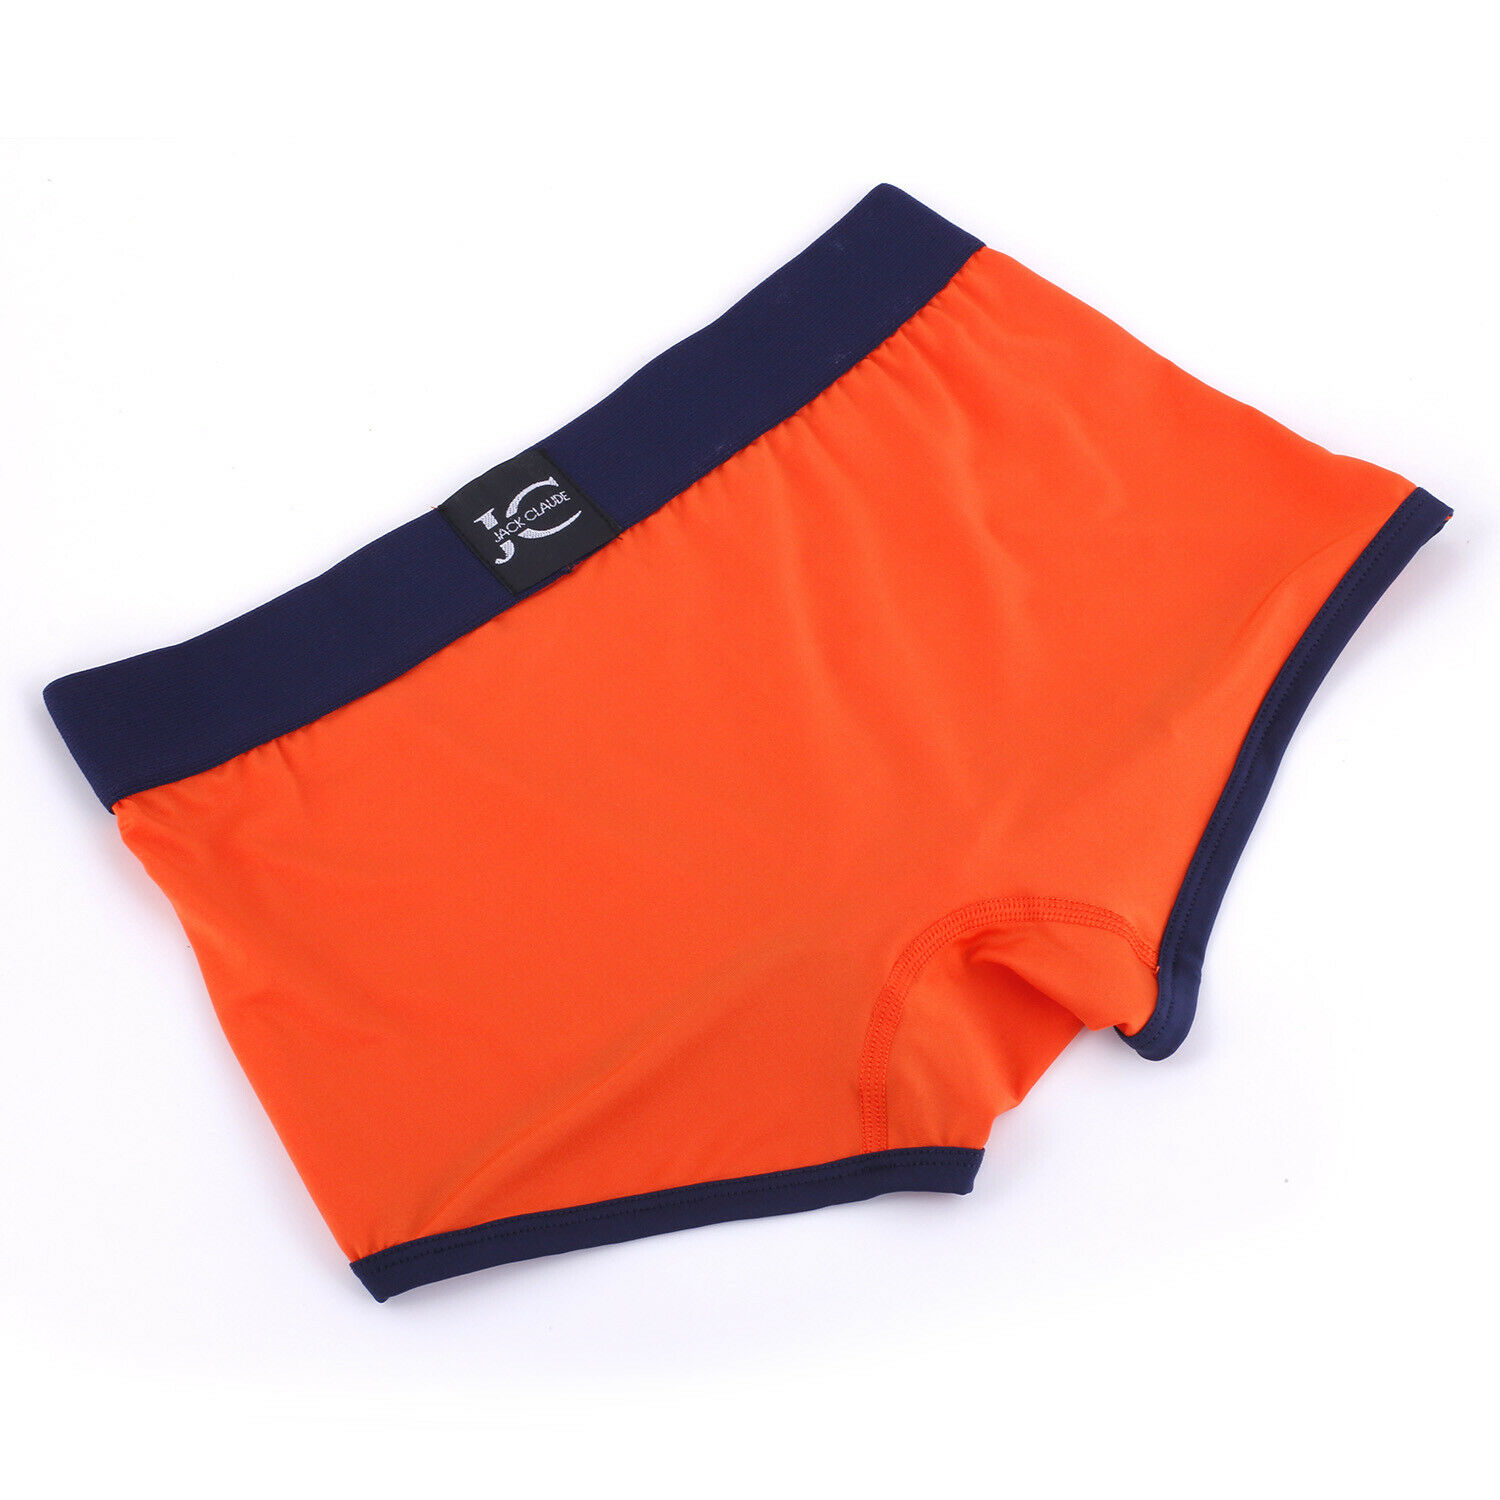 Multi-Pack-Mens-Jack-Claude-Boxer-Briefs-Underwear-Shorts-Bikini-Trunks-M-2XL thumbnail 13